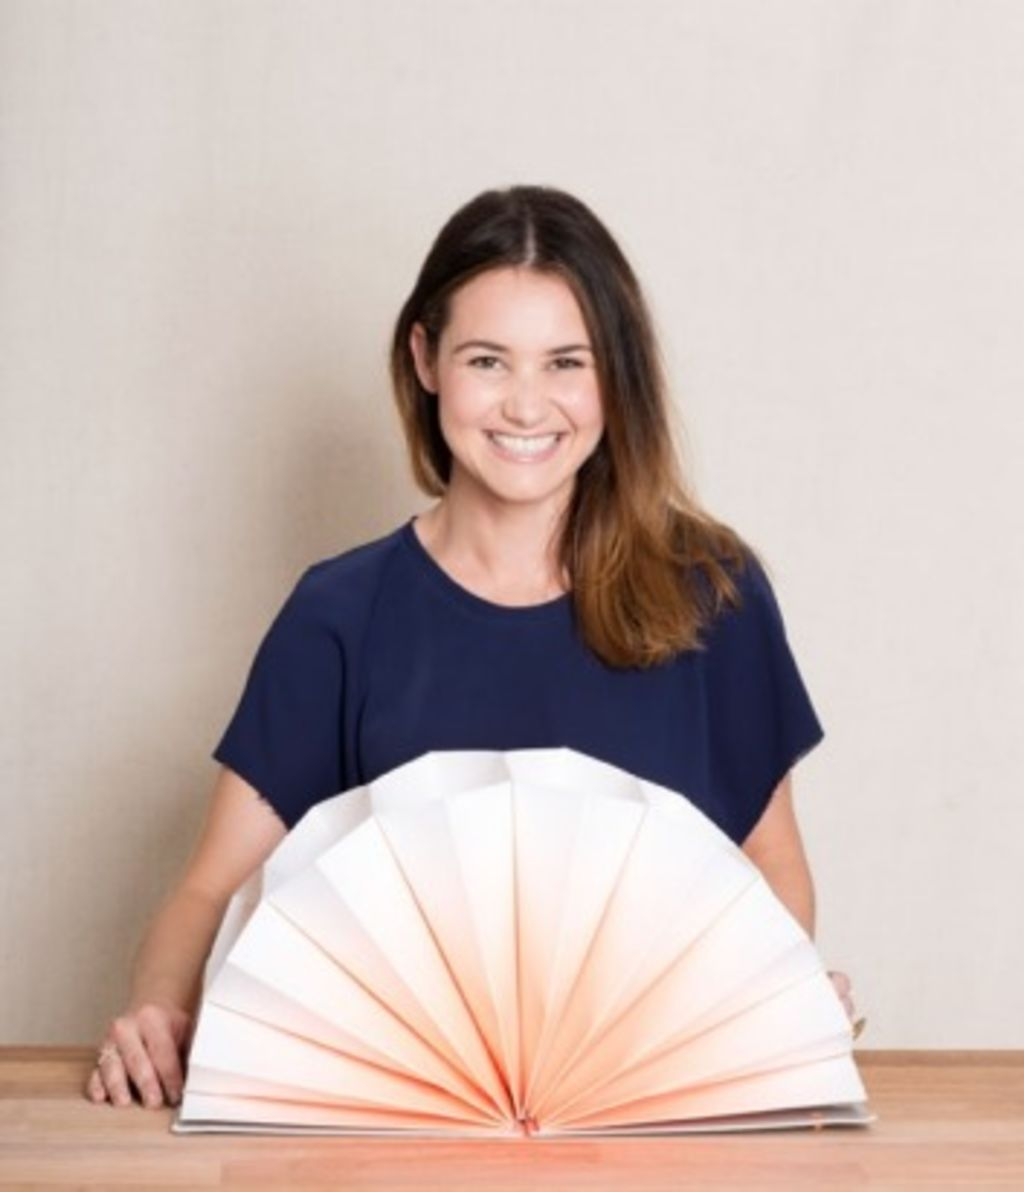 Dominique Brammah, associate with high-end interior designer practice Arent&Pyke, says interior and styling trends unfolding across social platforms make her yawn.